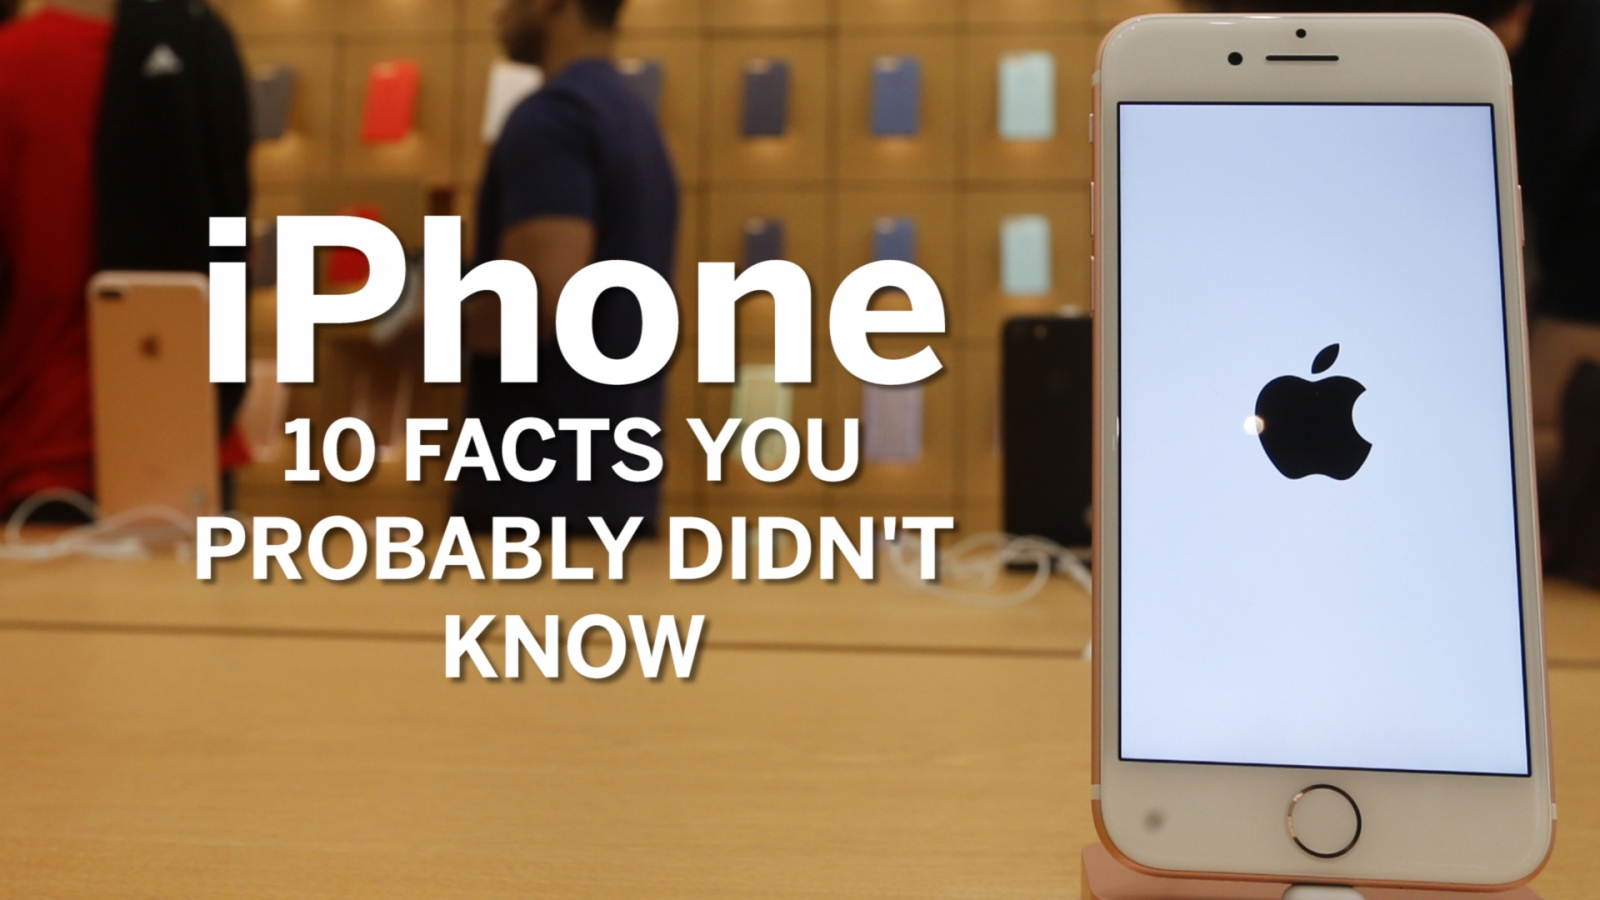 iphone-anniversary-10-facts-you-probably-didnt-know-about-the-decade-old-smartphone